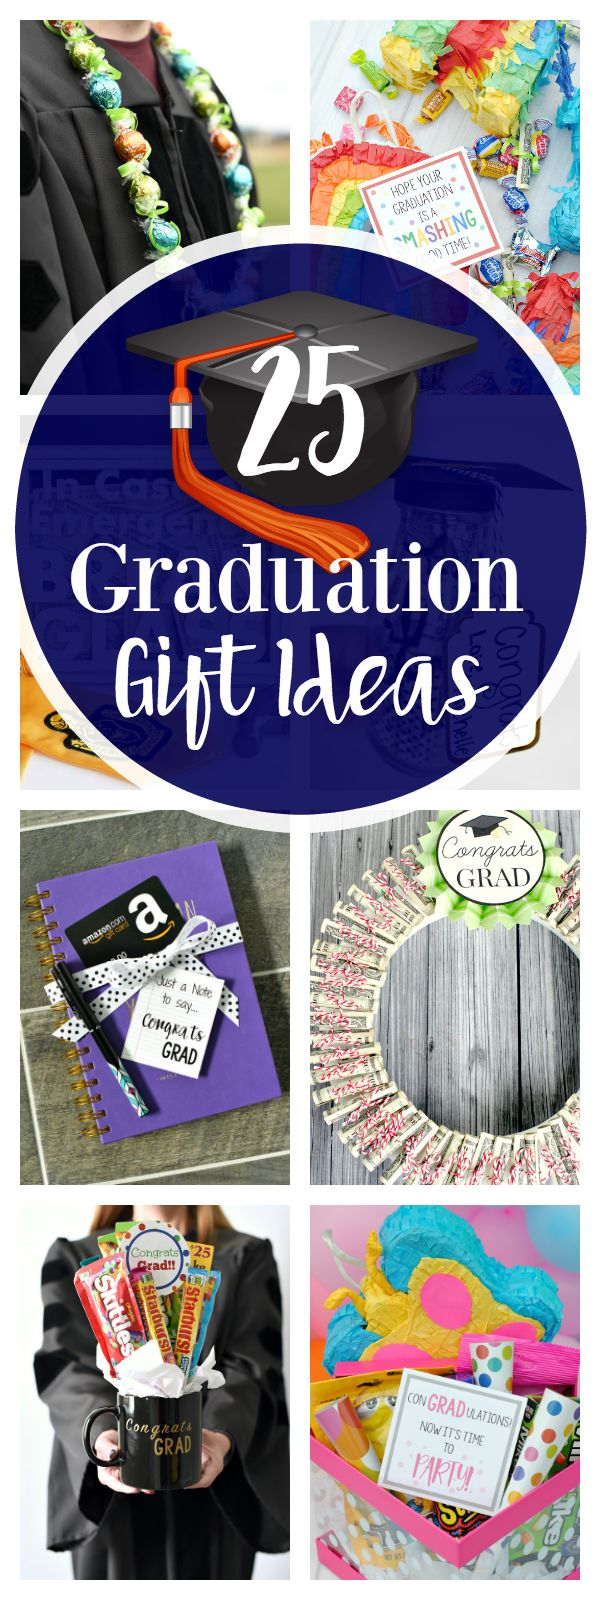 Ideas for Graduation Gifts